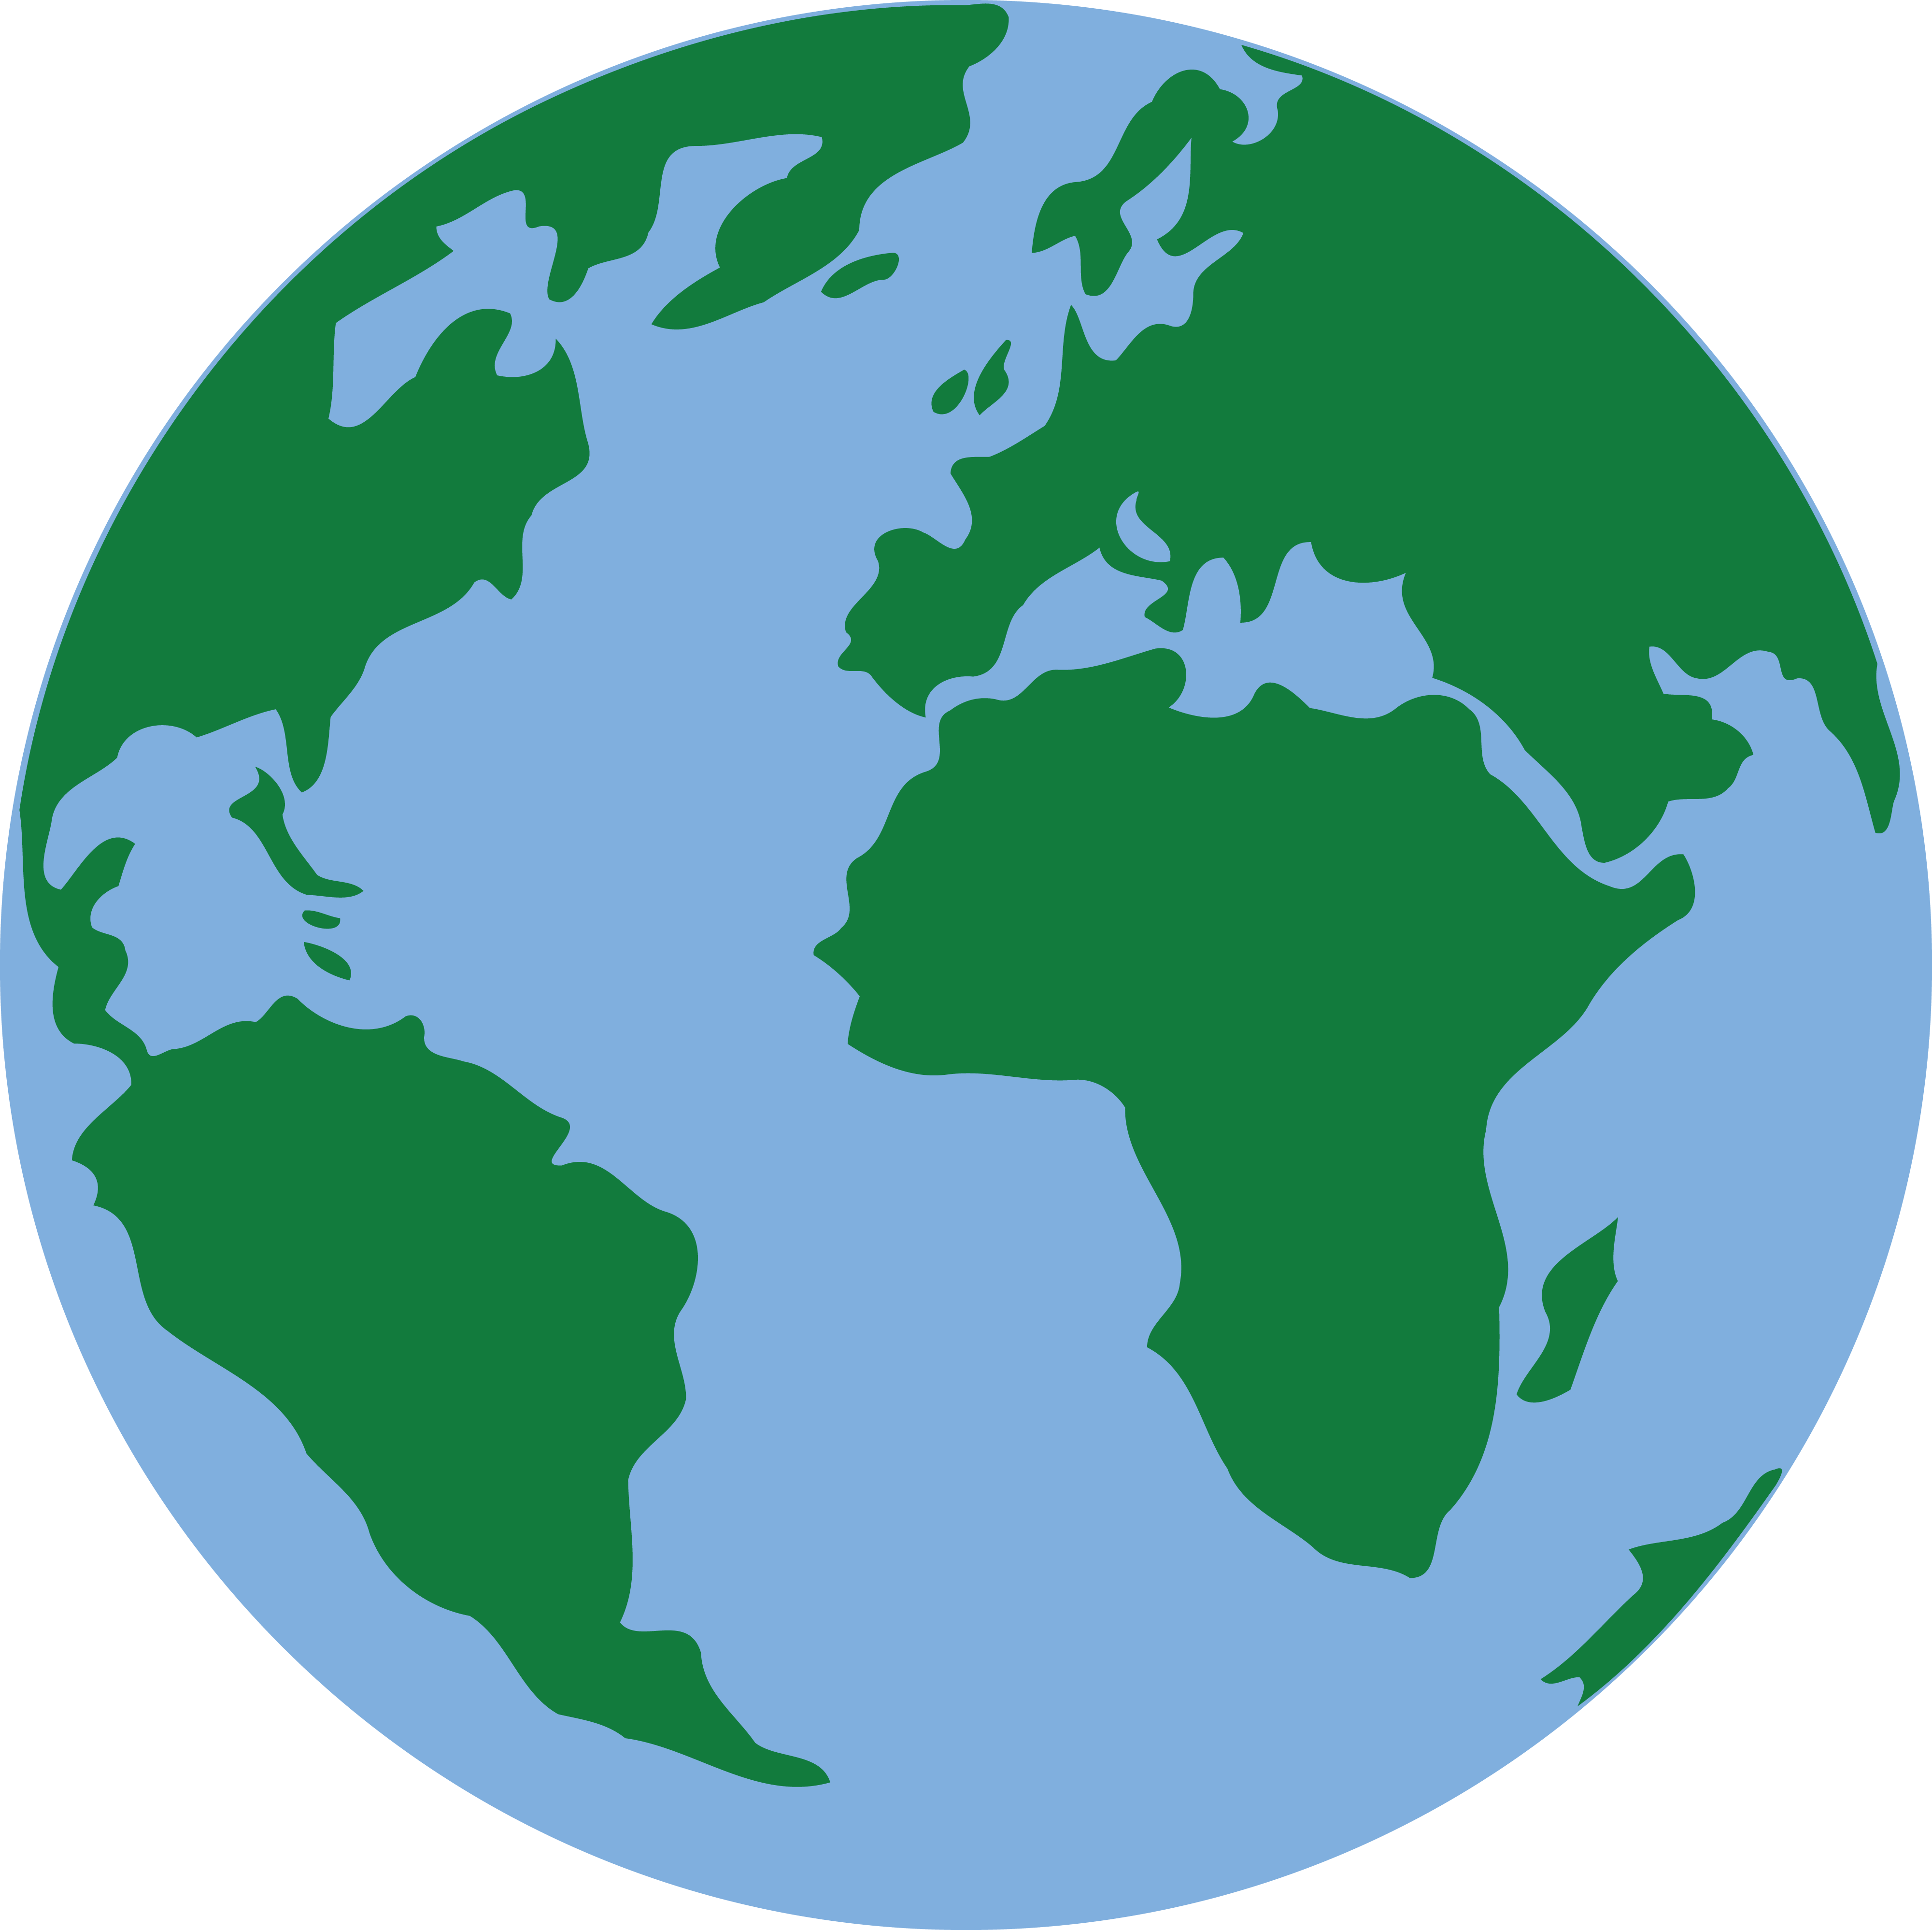 Earth clipart png. Collection of world